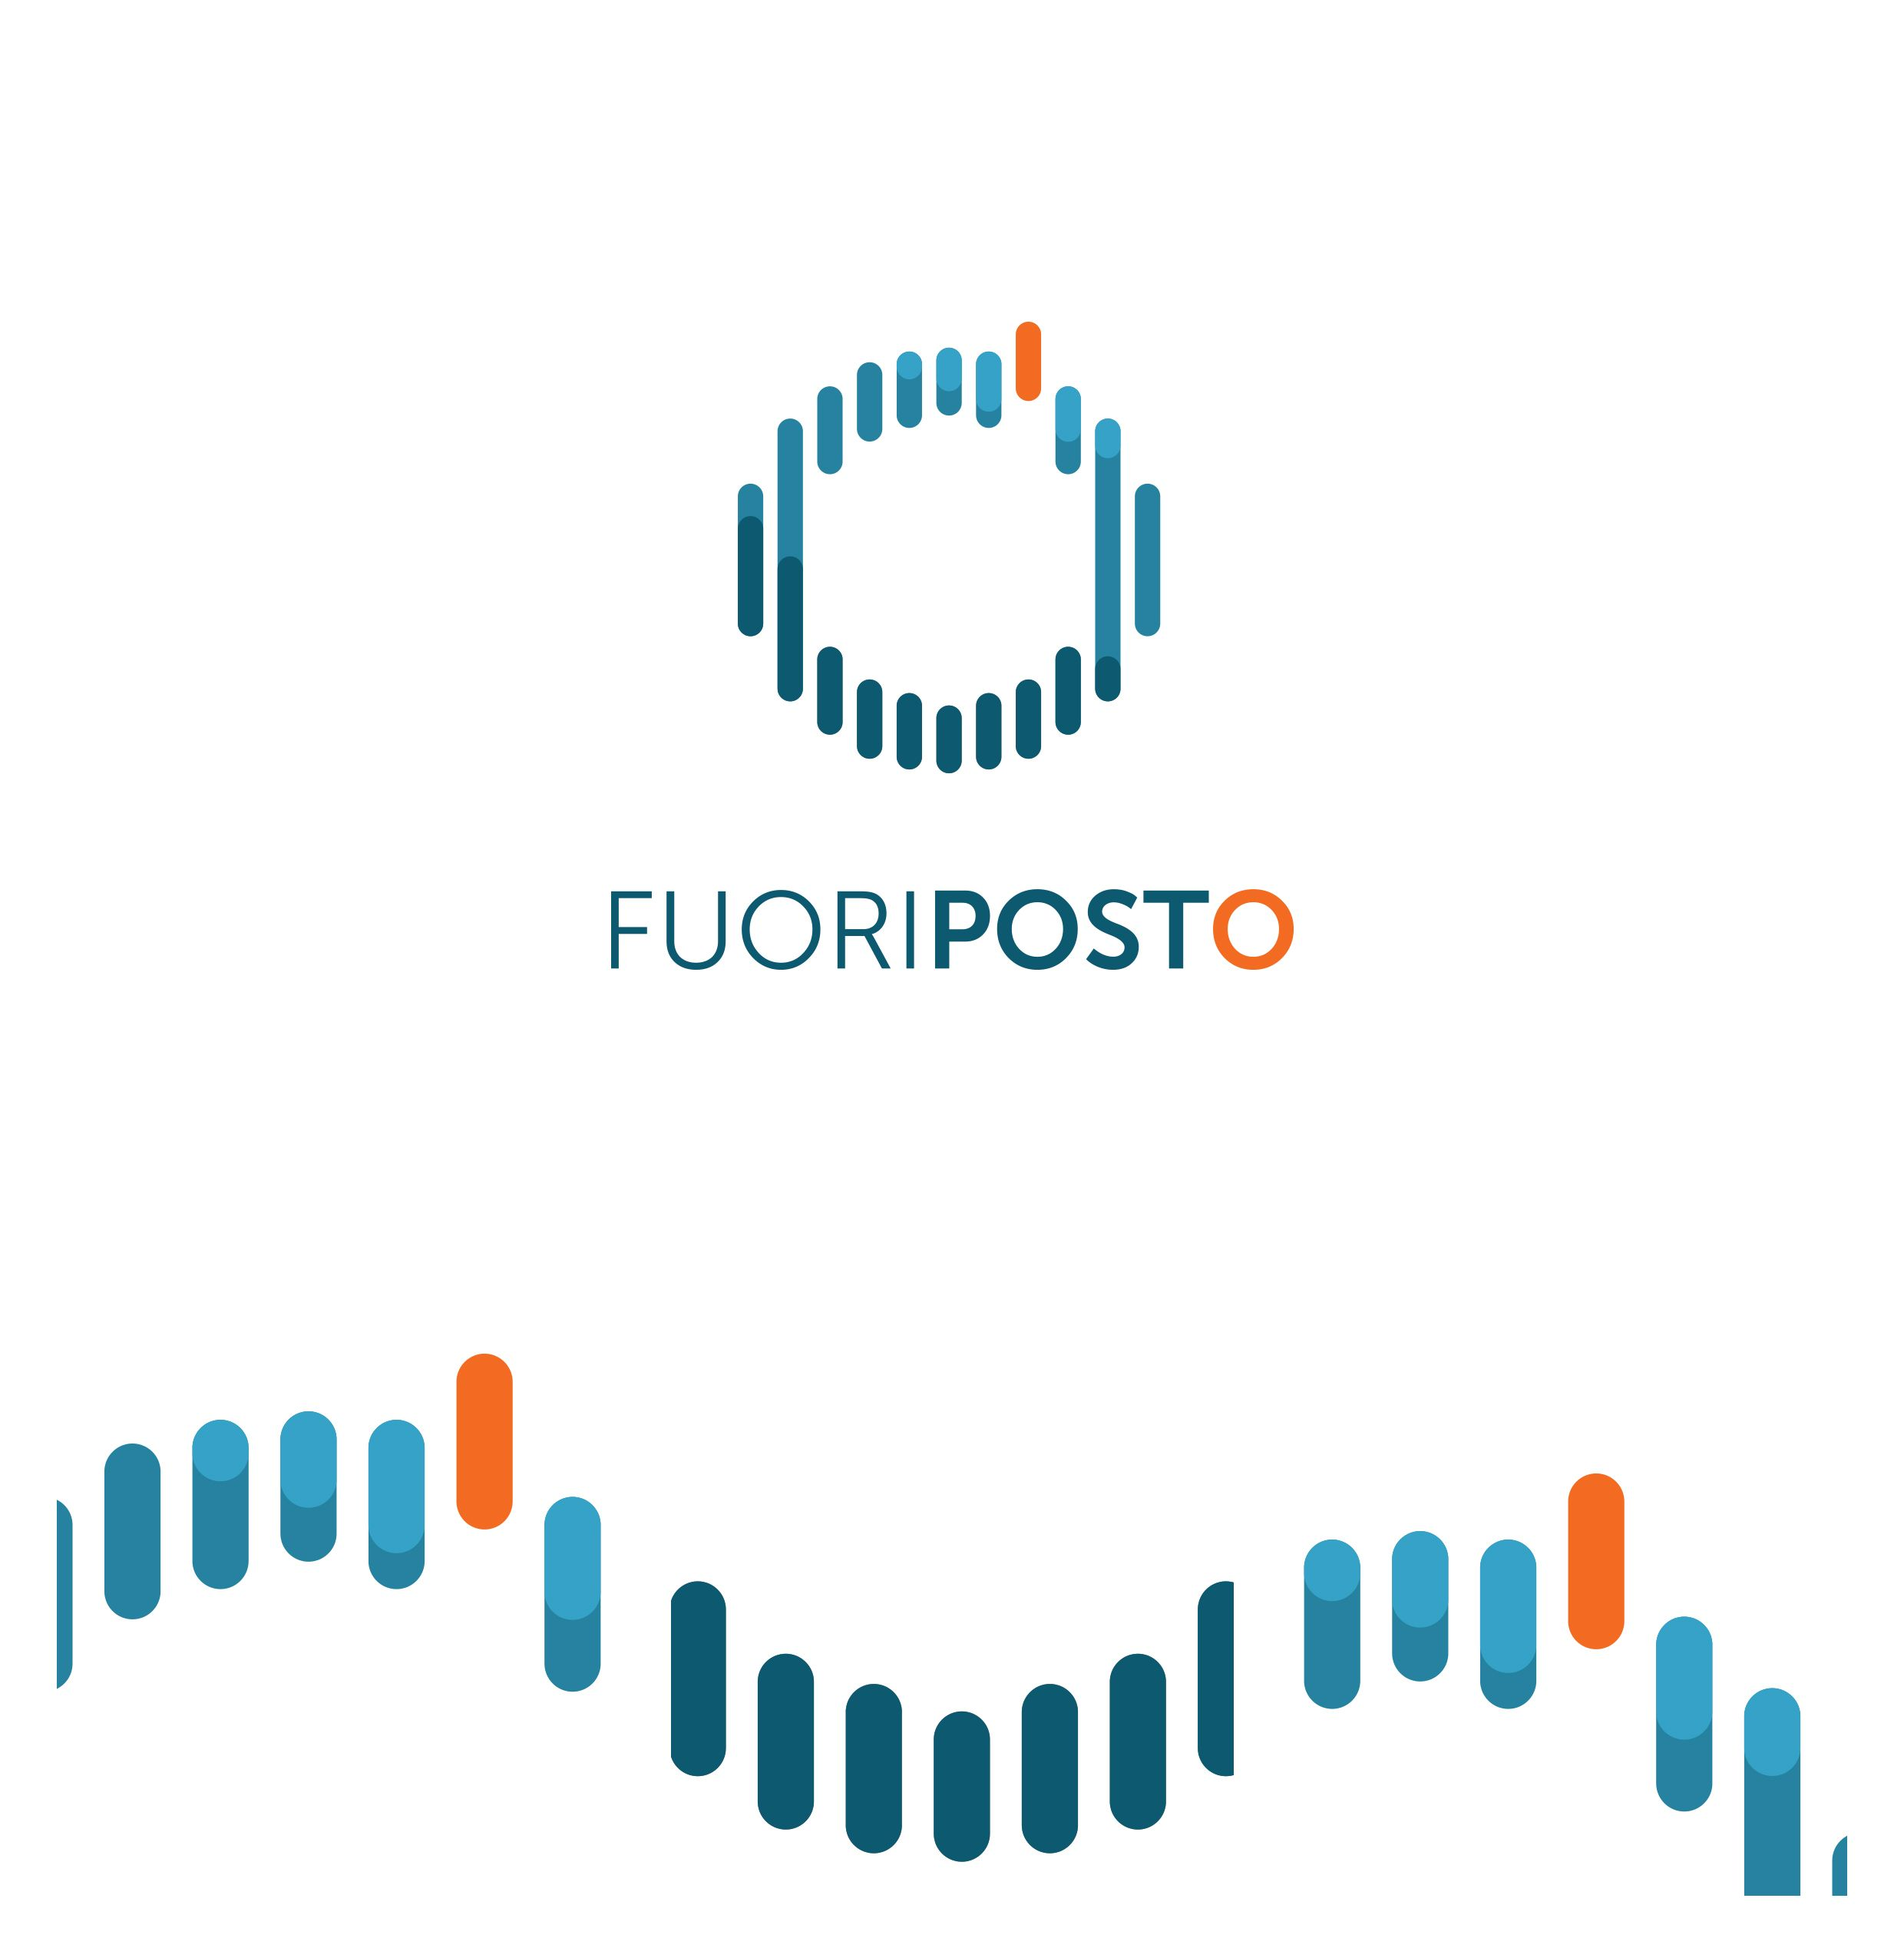 FUORI POSTO (Out of place) client work